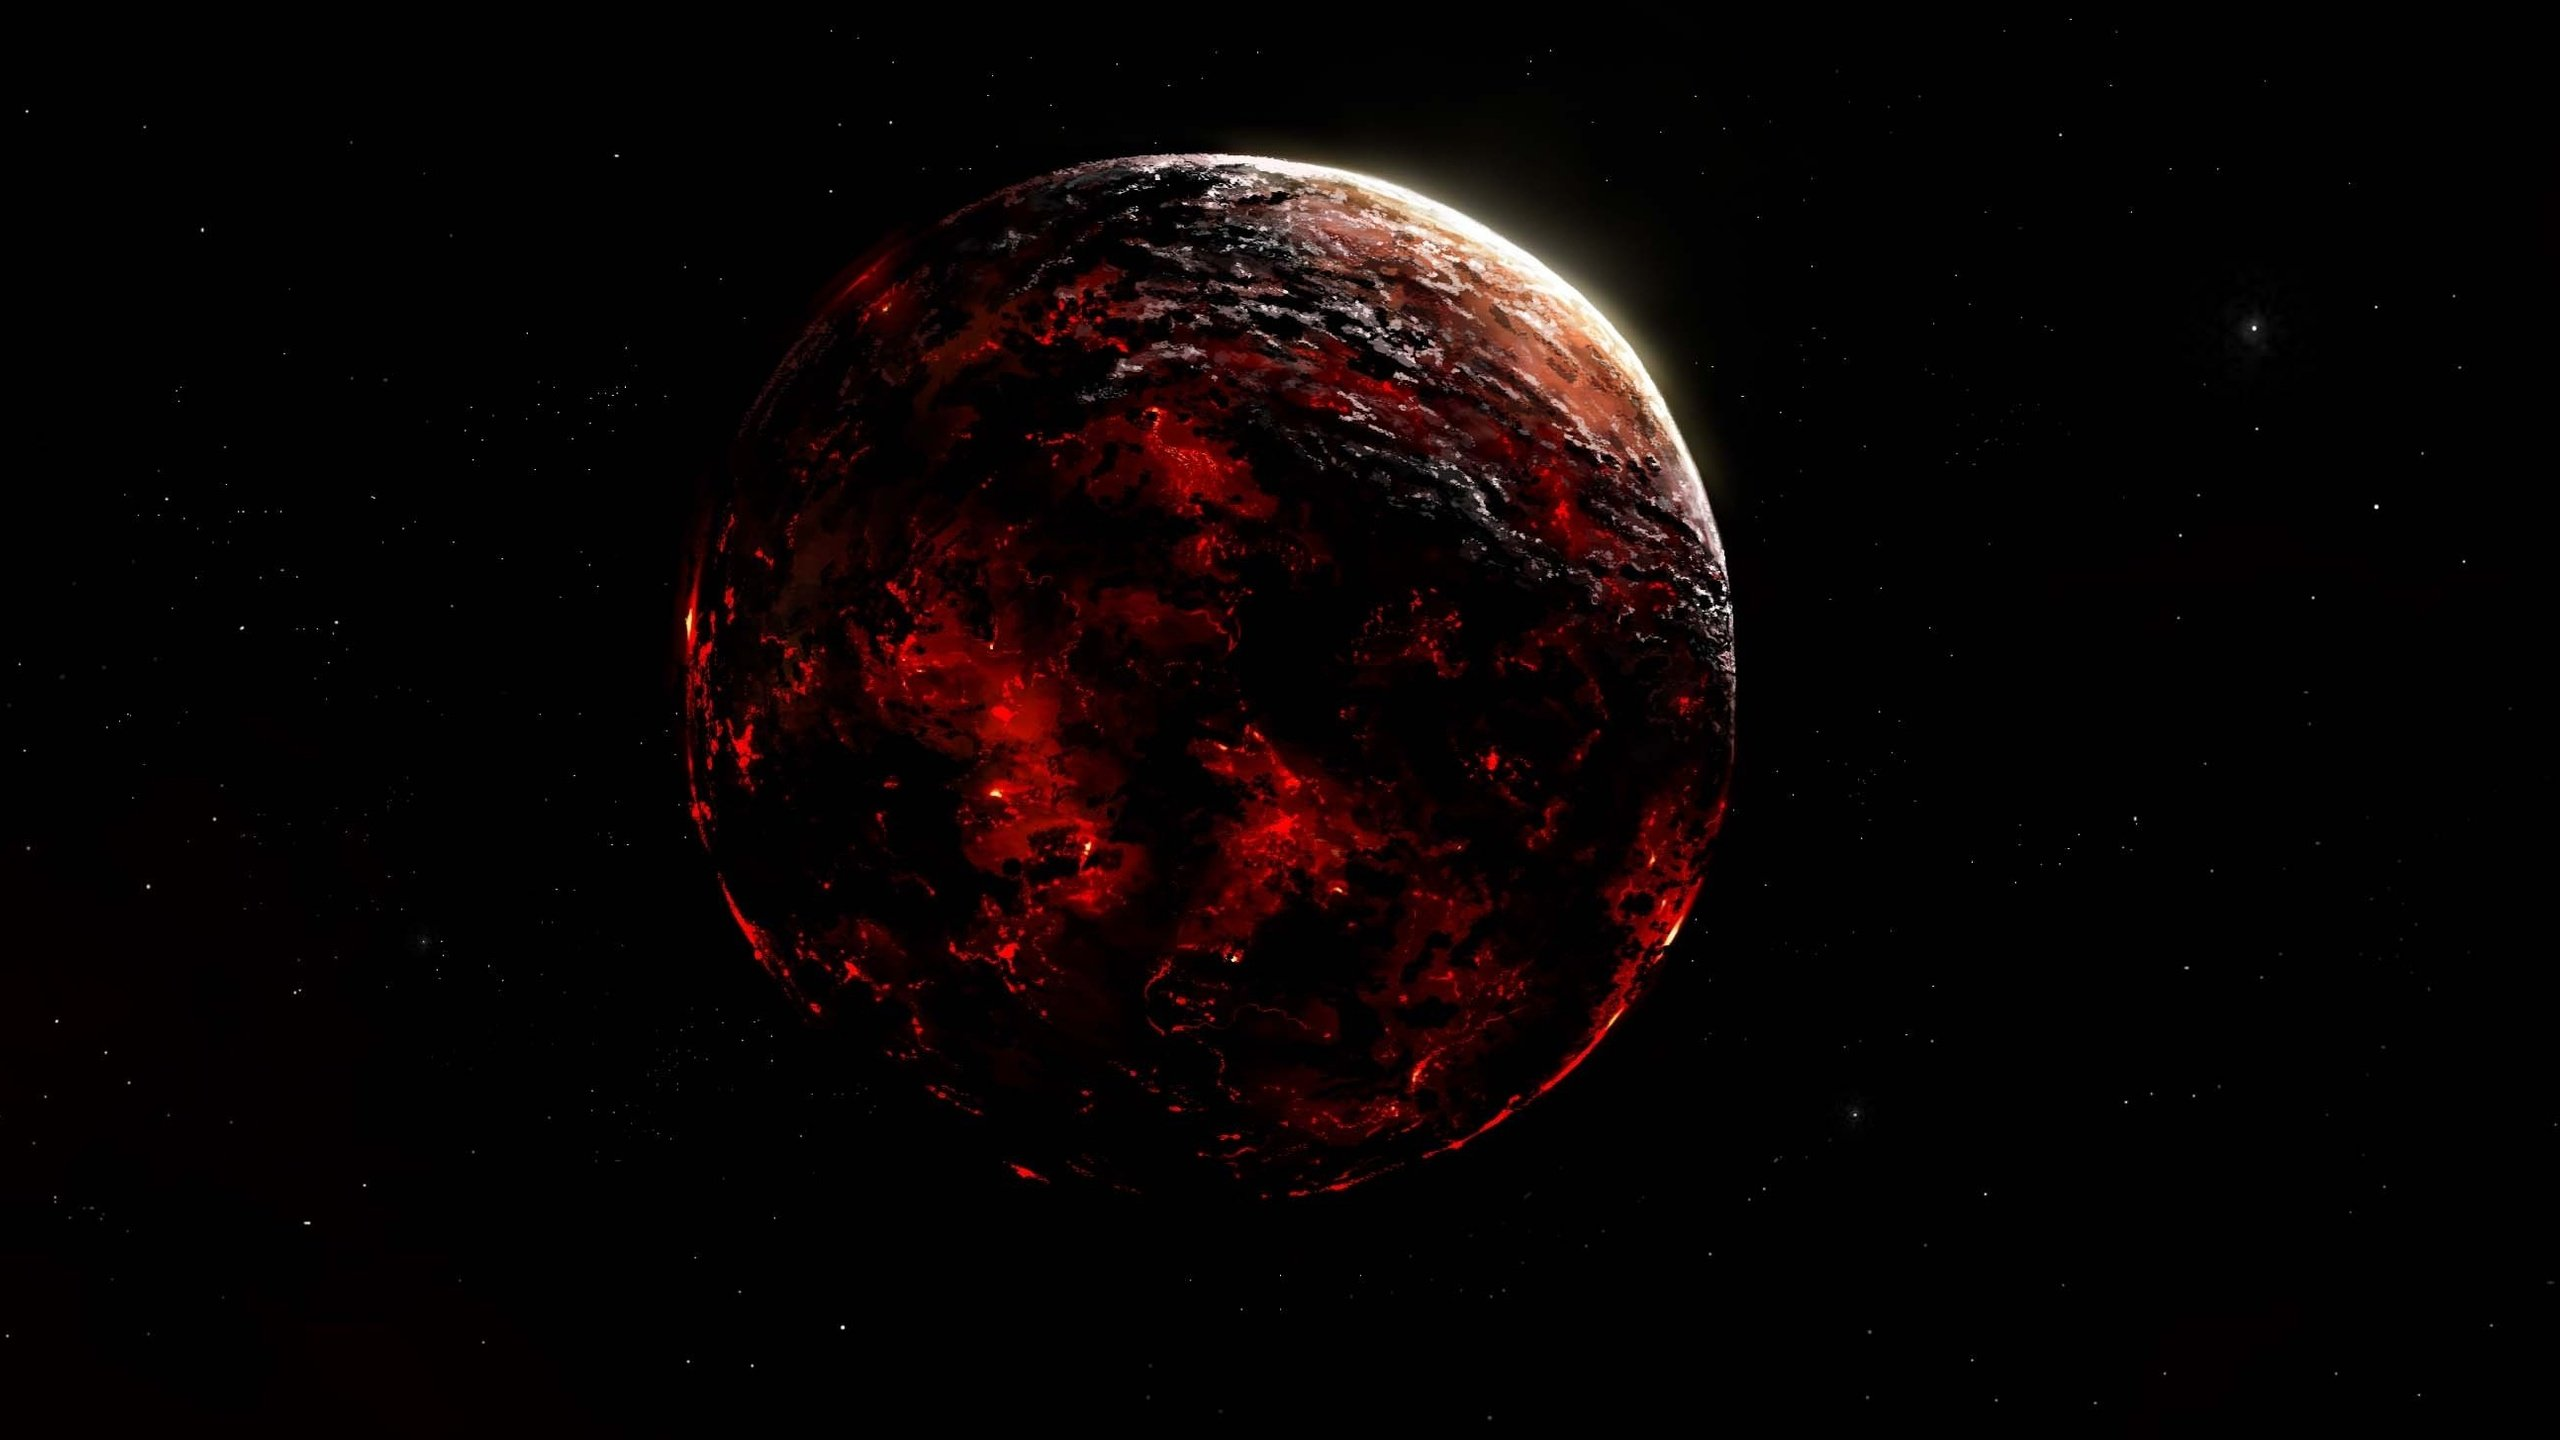 Red giant planet space sun wallpaper | 2560x1440 | 438404 ...